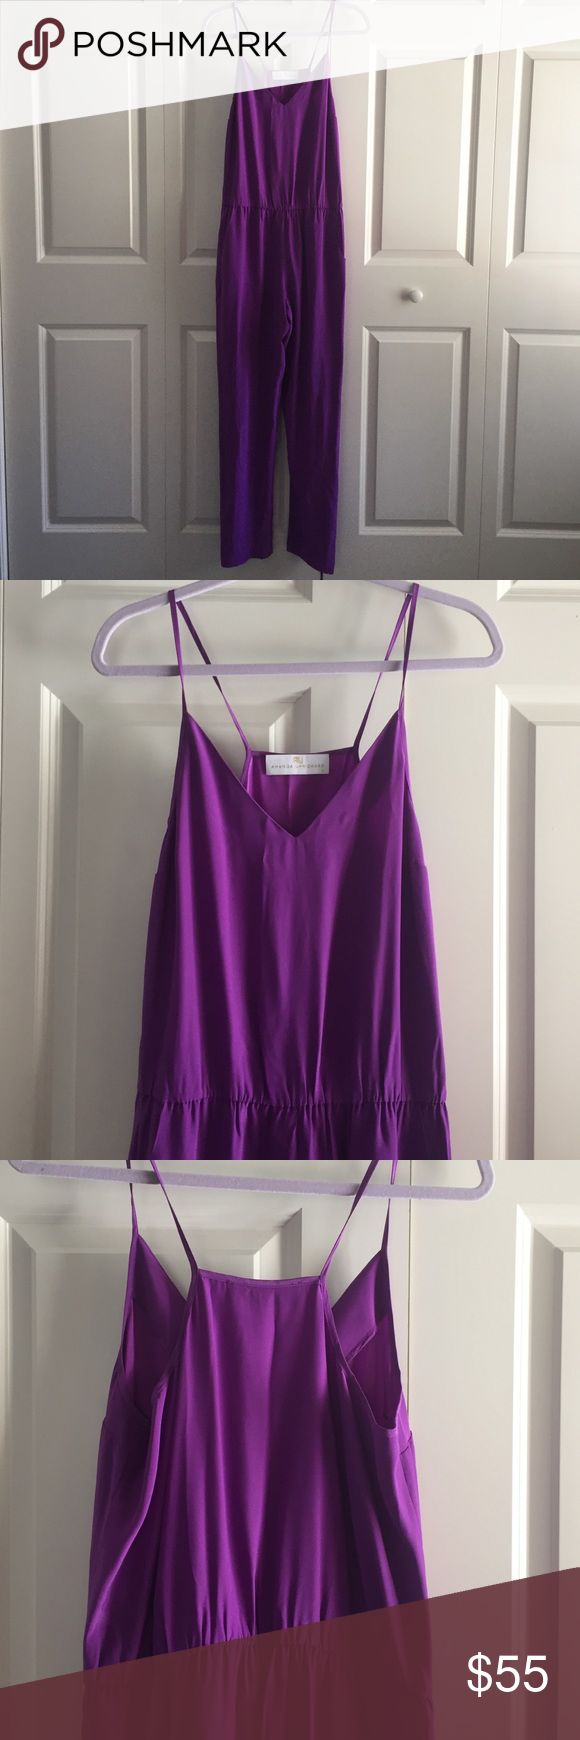 Designer Purple Jumper Designer Amanda Uprichard purple jumper. Size medium. Never worn. Amanda Uprichard Pants Jumpsuits & Rompers